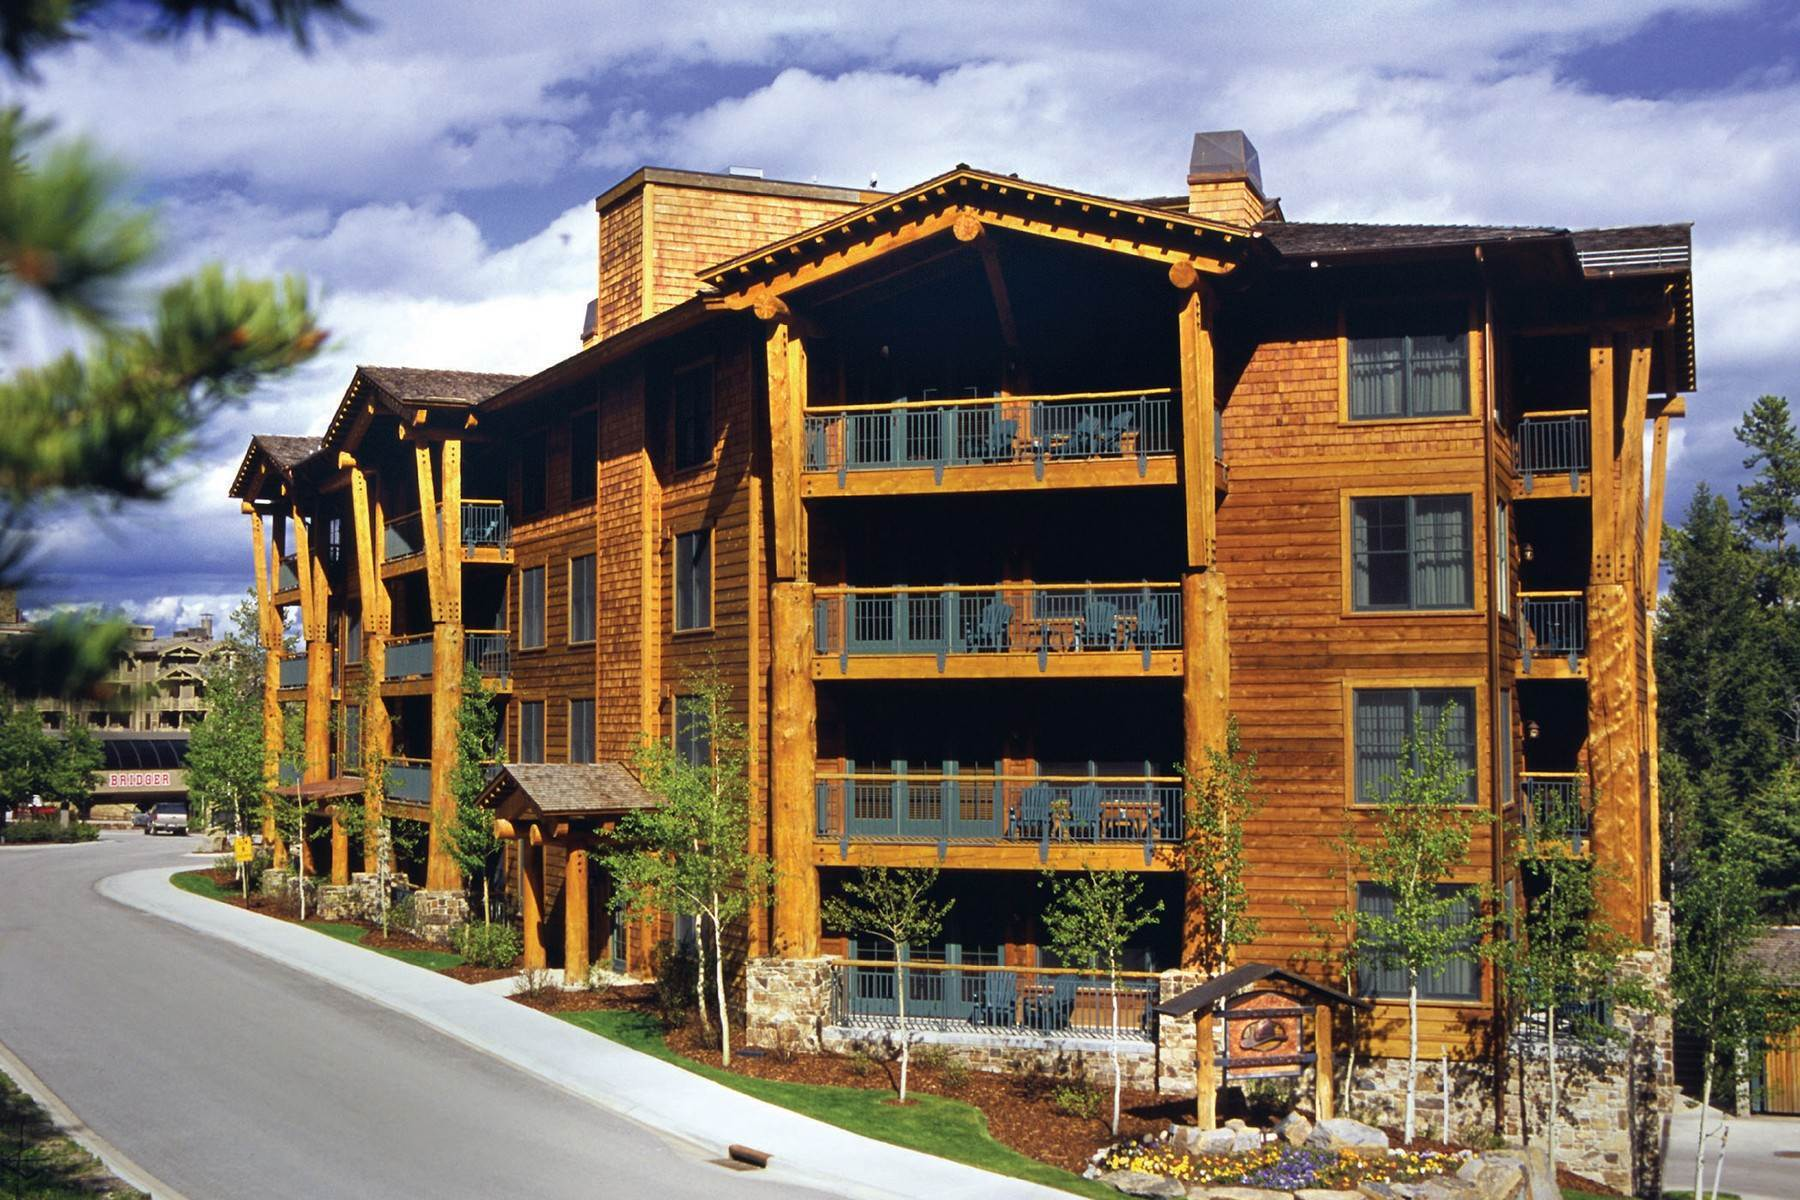 4. fractional ownership prop for Sale at 3340 W Cody Ln, #112 Teton Village, Wyoming 83025 United States